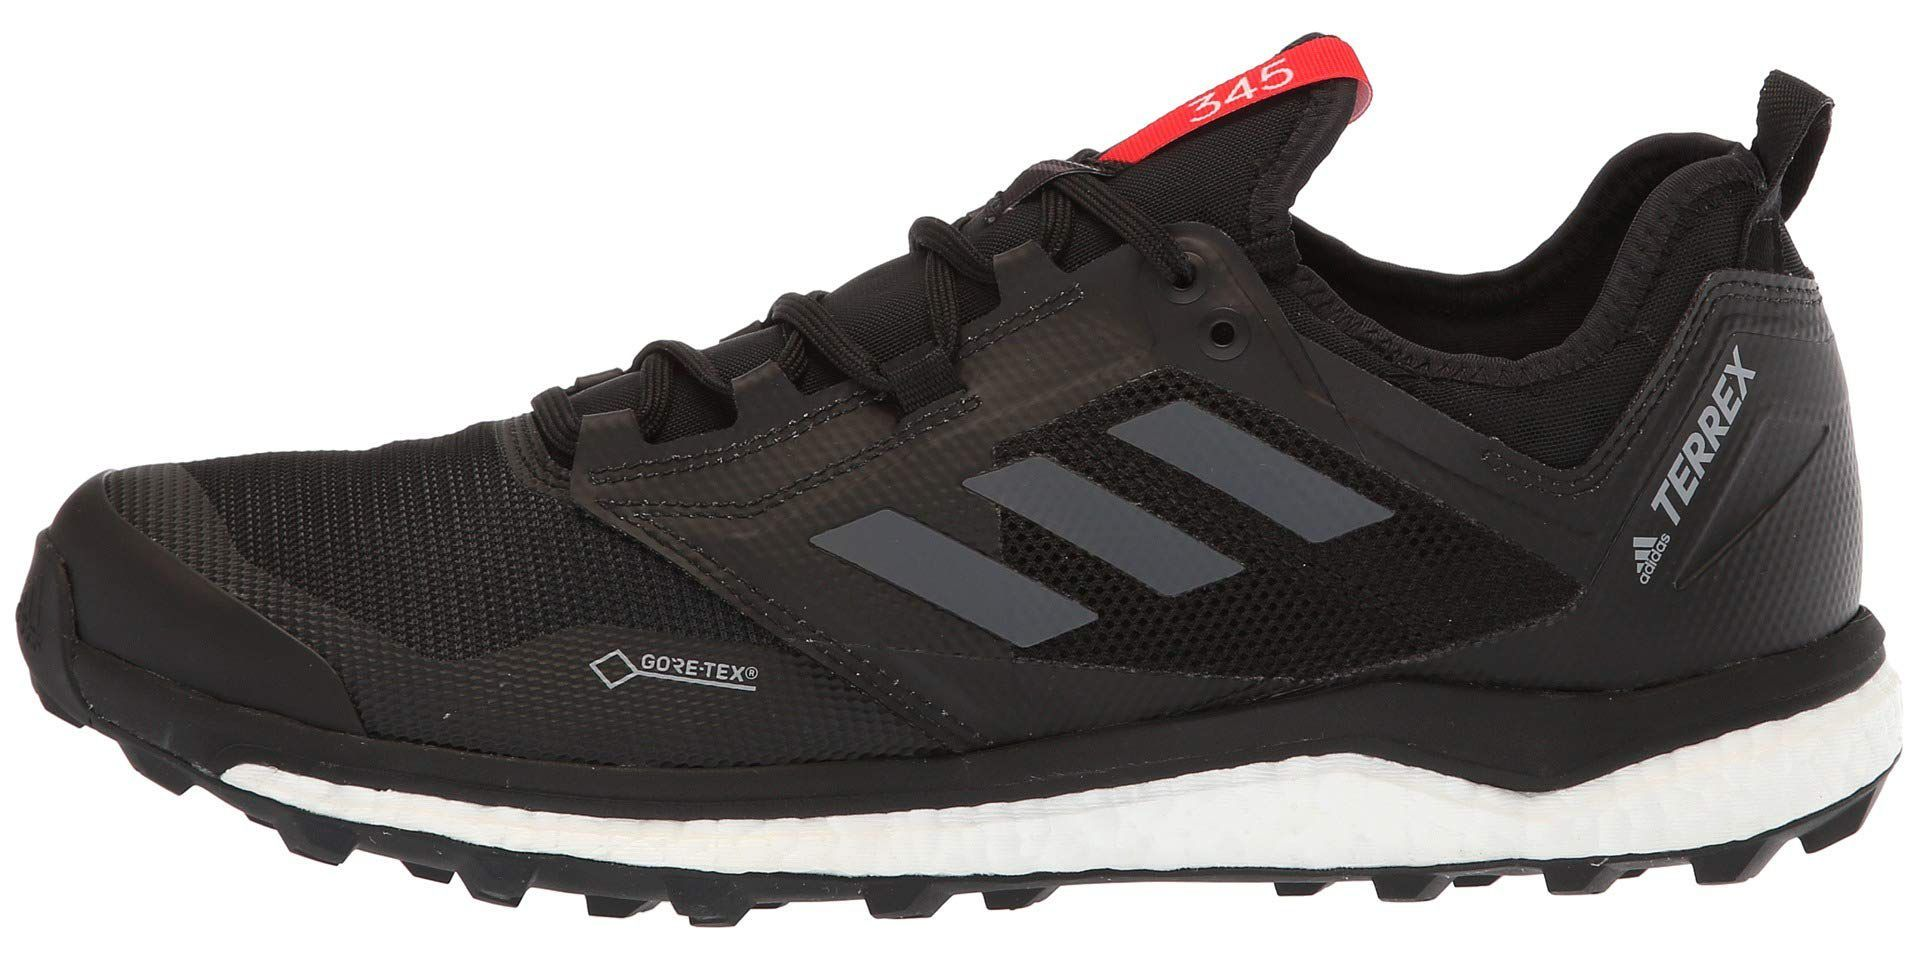 The 10 Best Running Shoes From Adidas | Fitness motivation